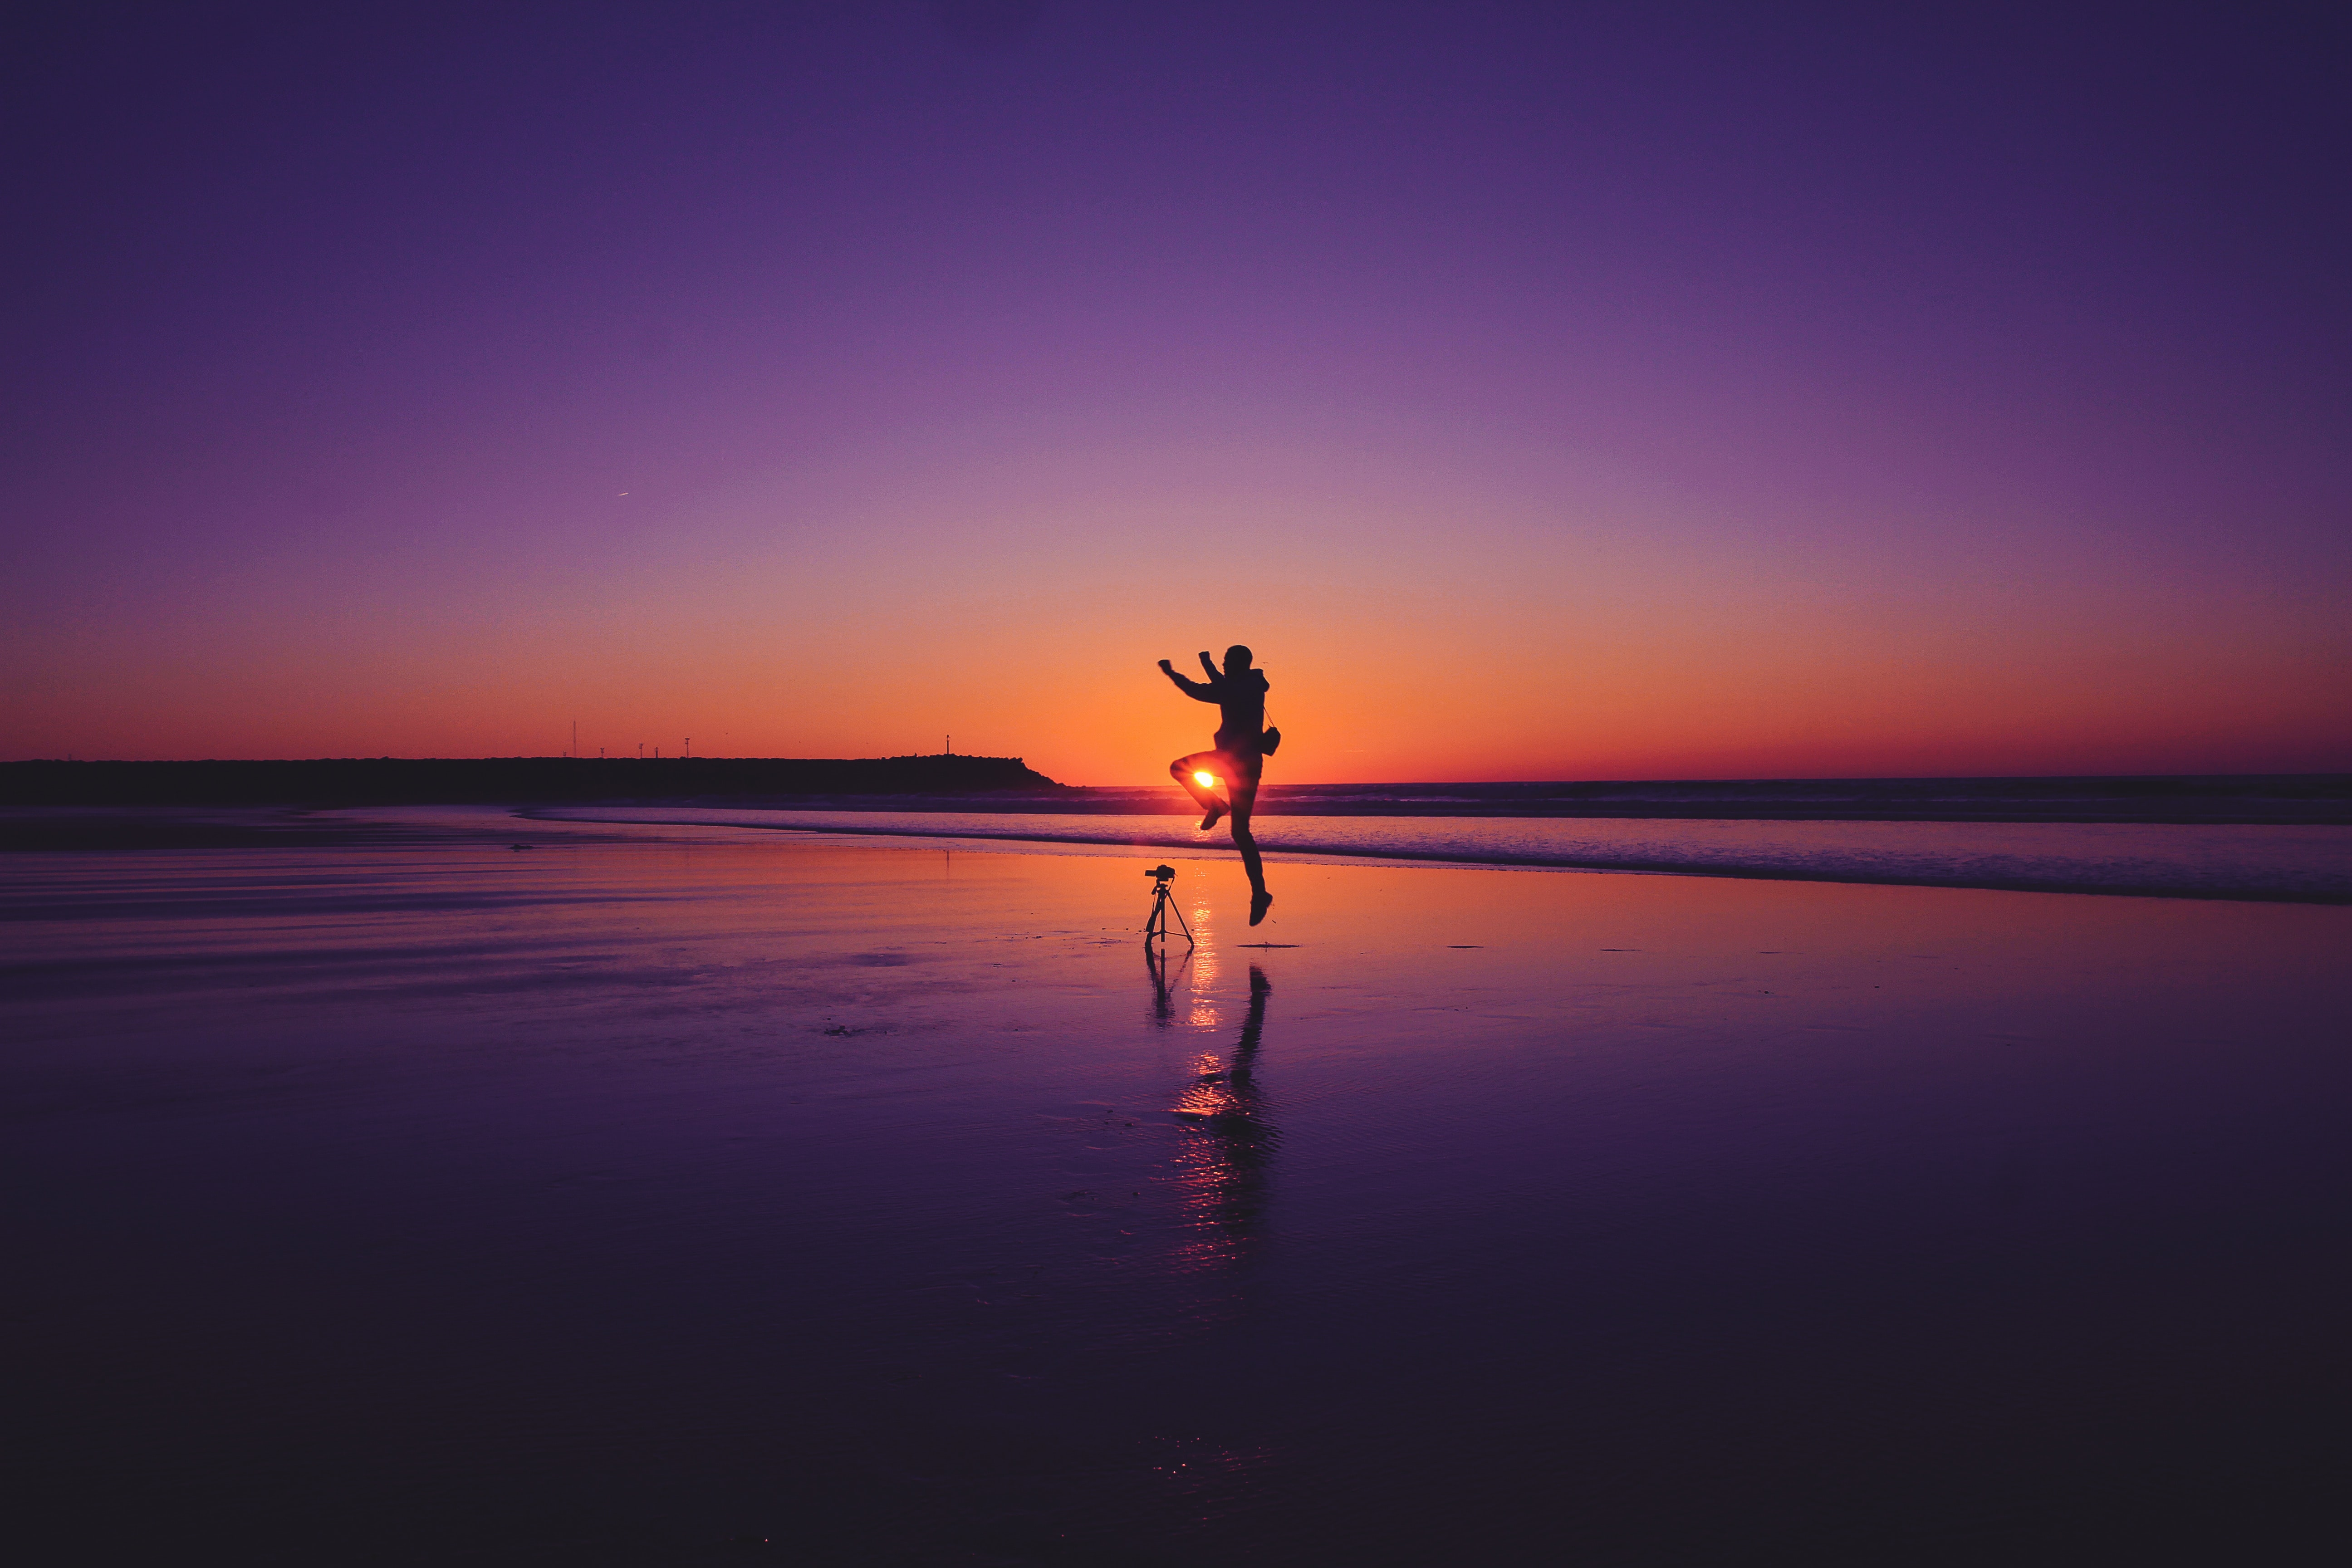 silhouette of man on beach